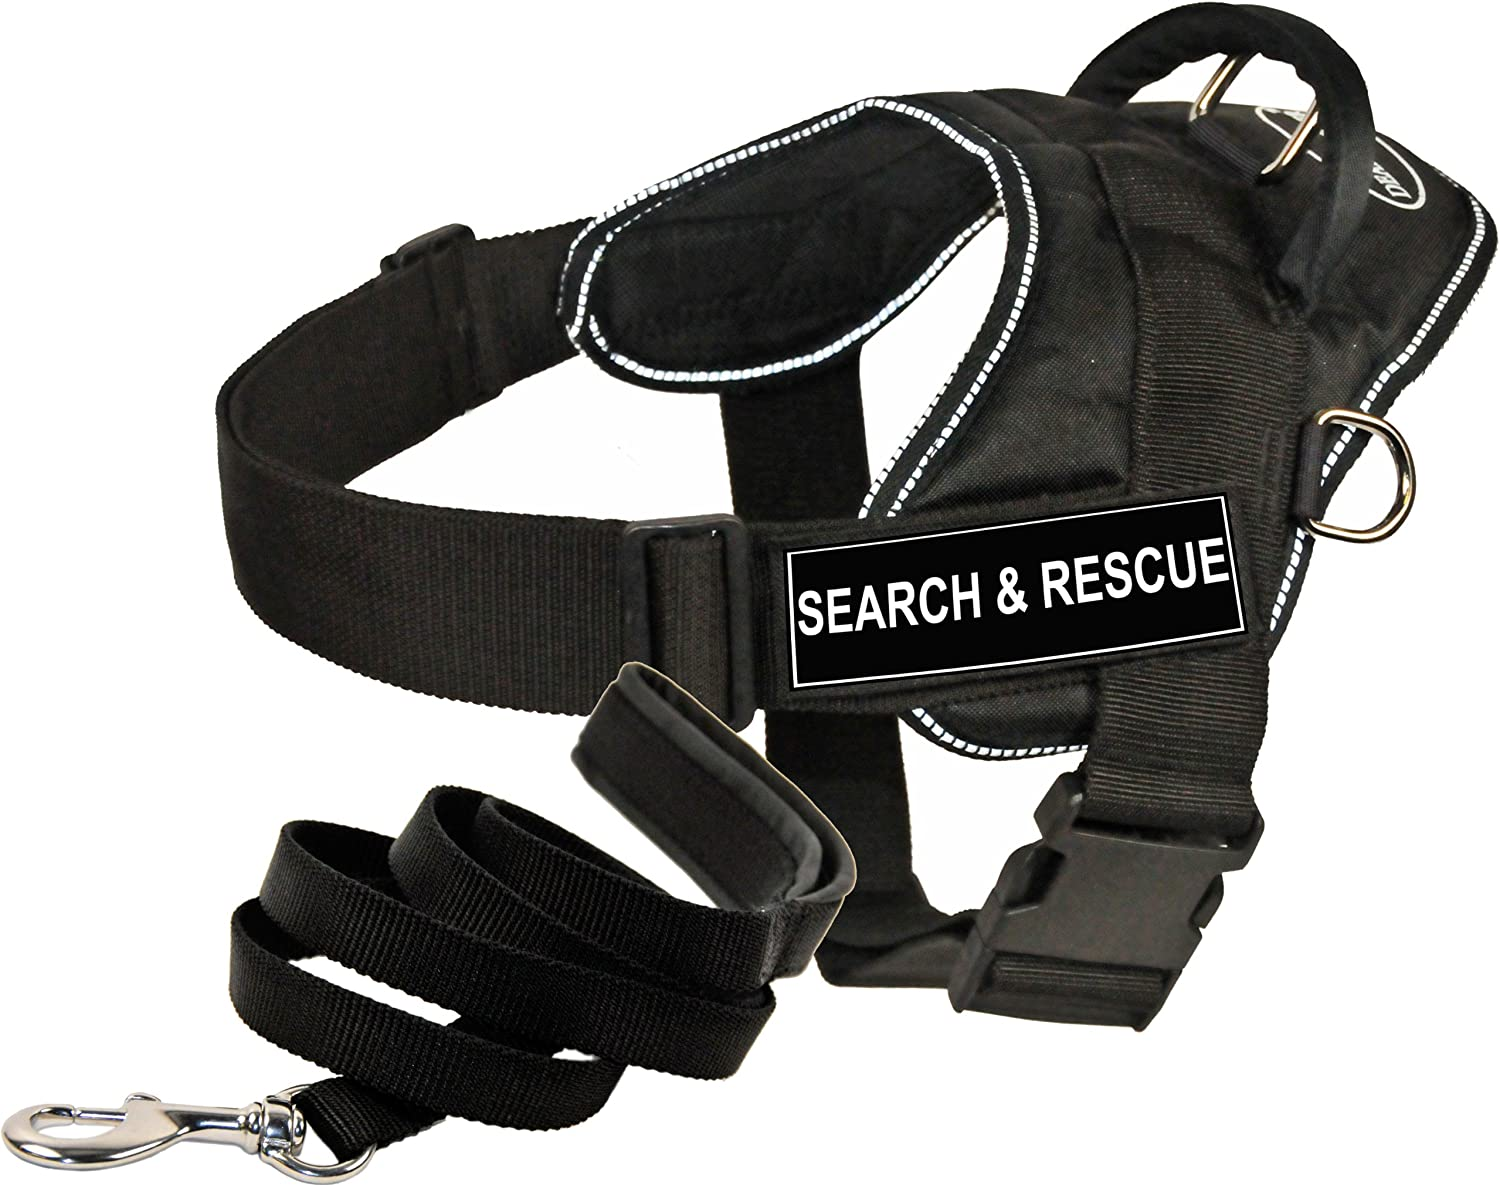 Dean and Tyler Bundle  One DT Fun Works  Harness, Search and Rescue, Reflective, Small + One Padded Puppy  Leash, 6 FT Stainless Snap  Black